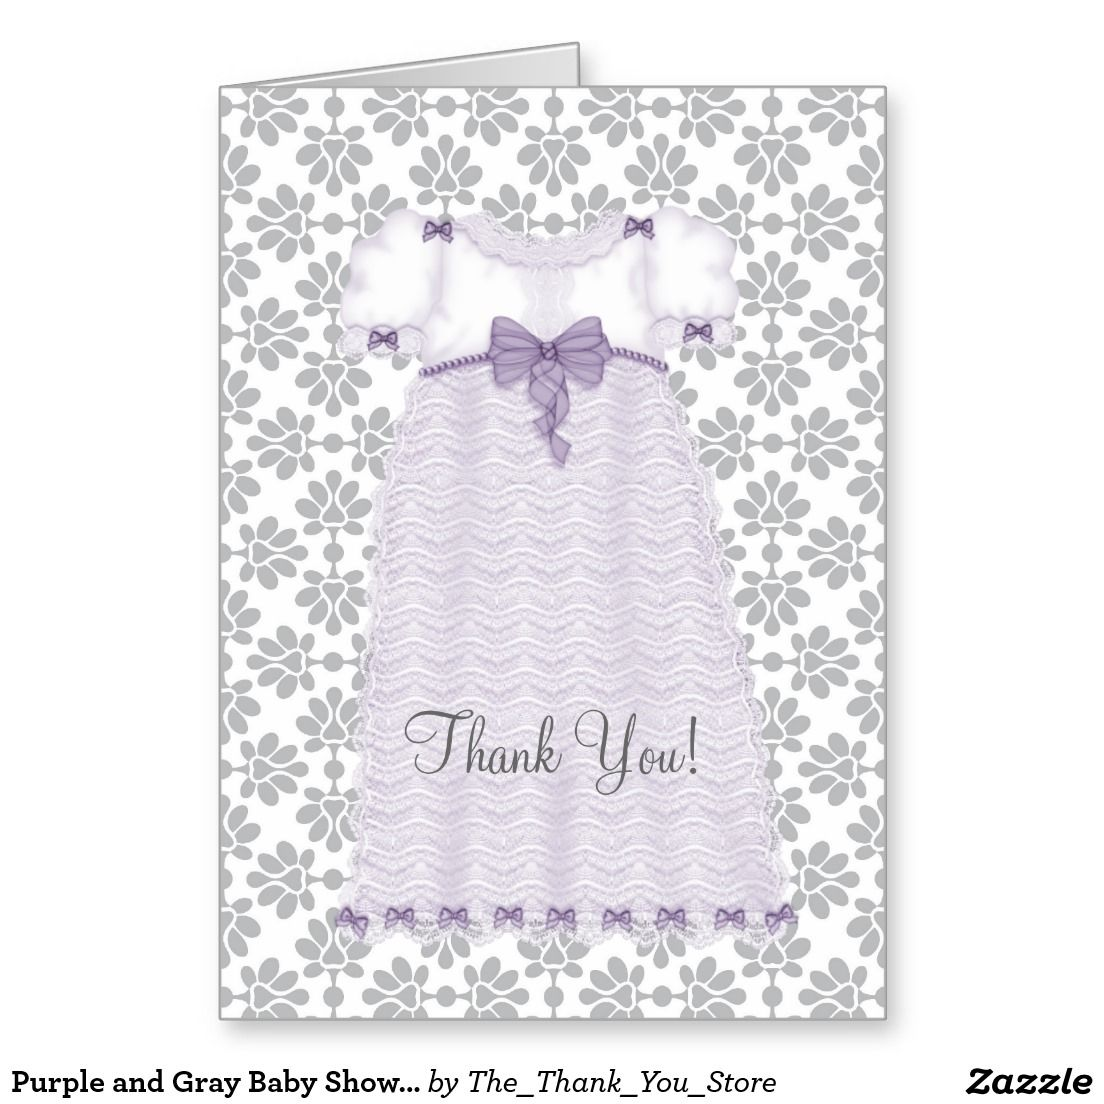 Purple and Gray Baby Shower Thank You Cards